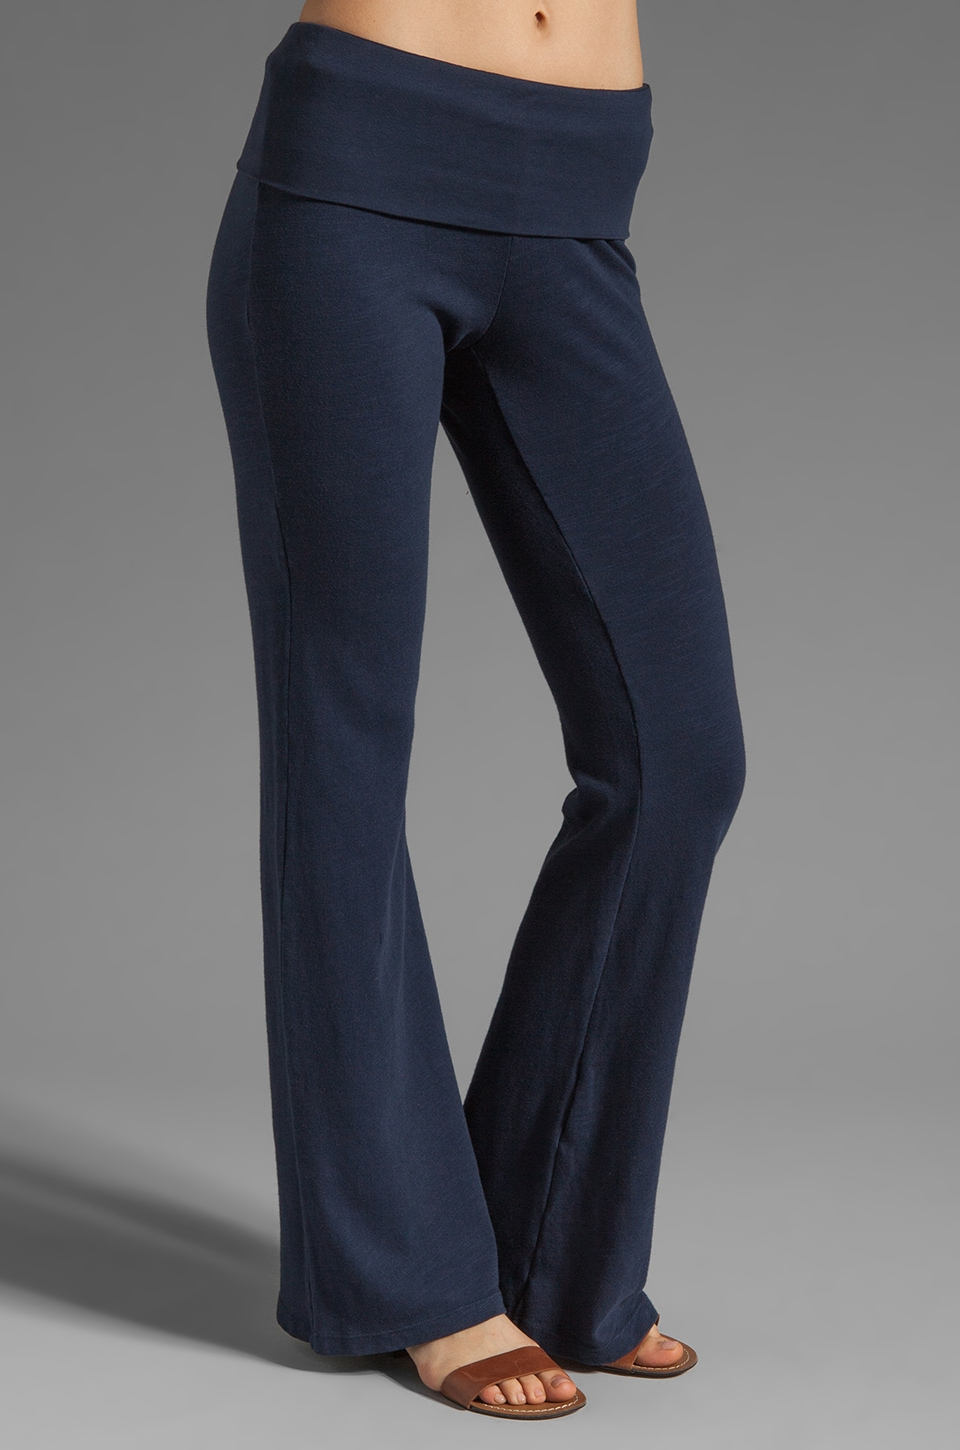 Splendid Slub Active Pant in Navy